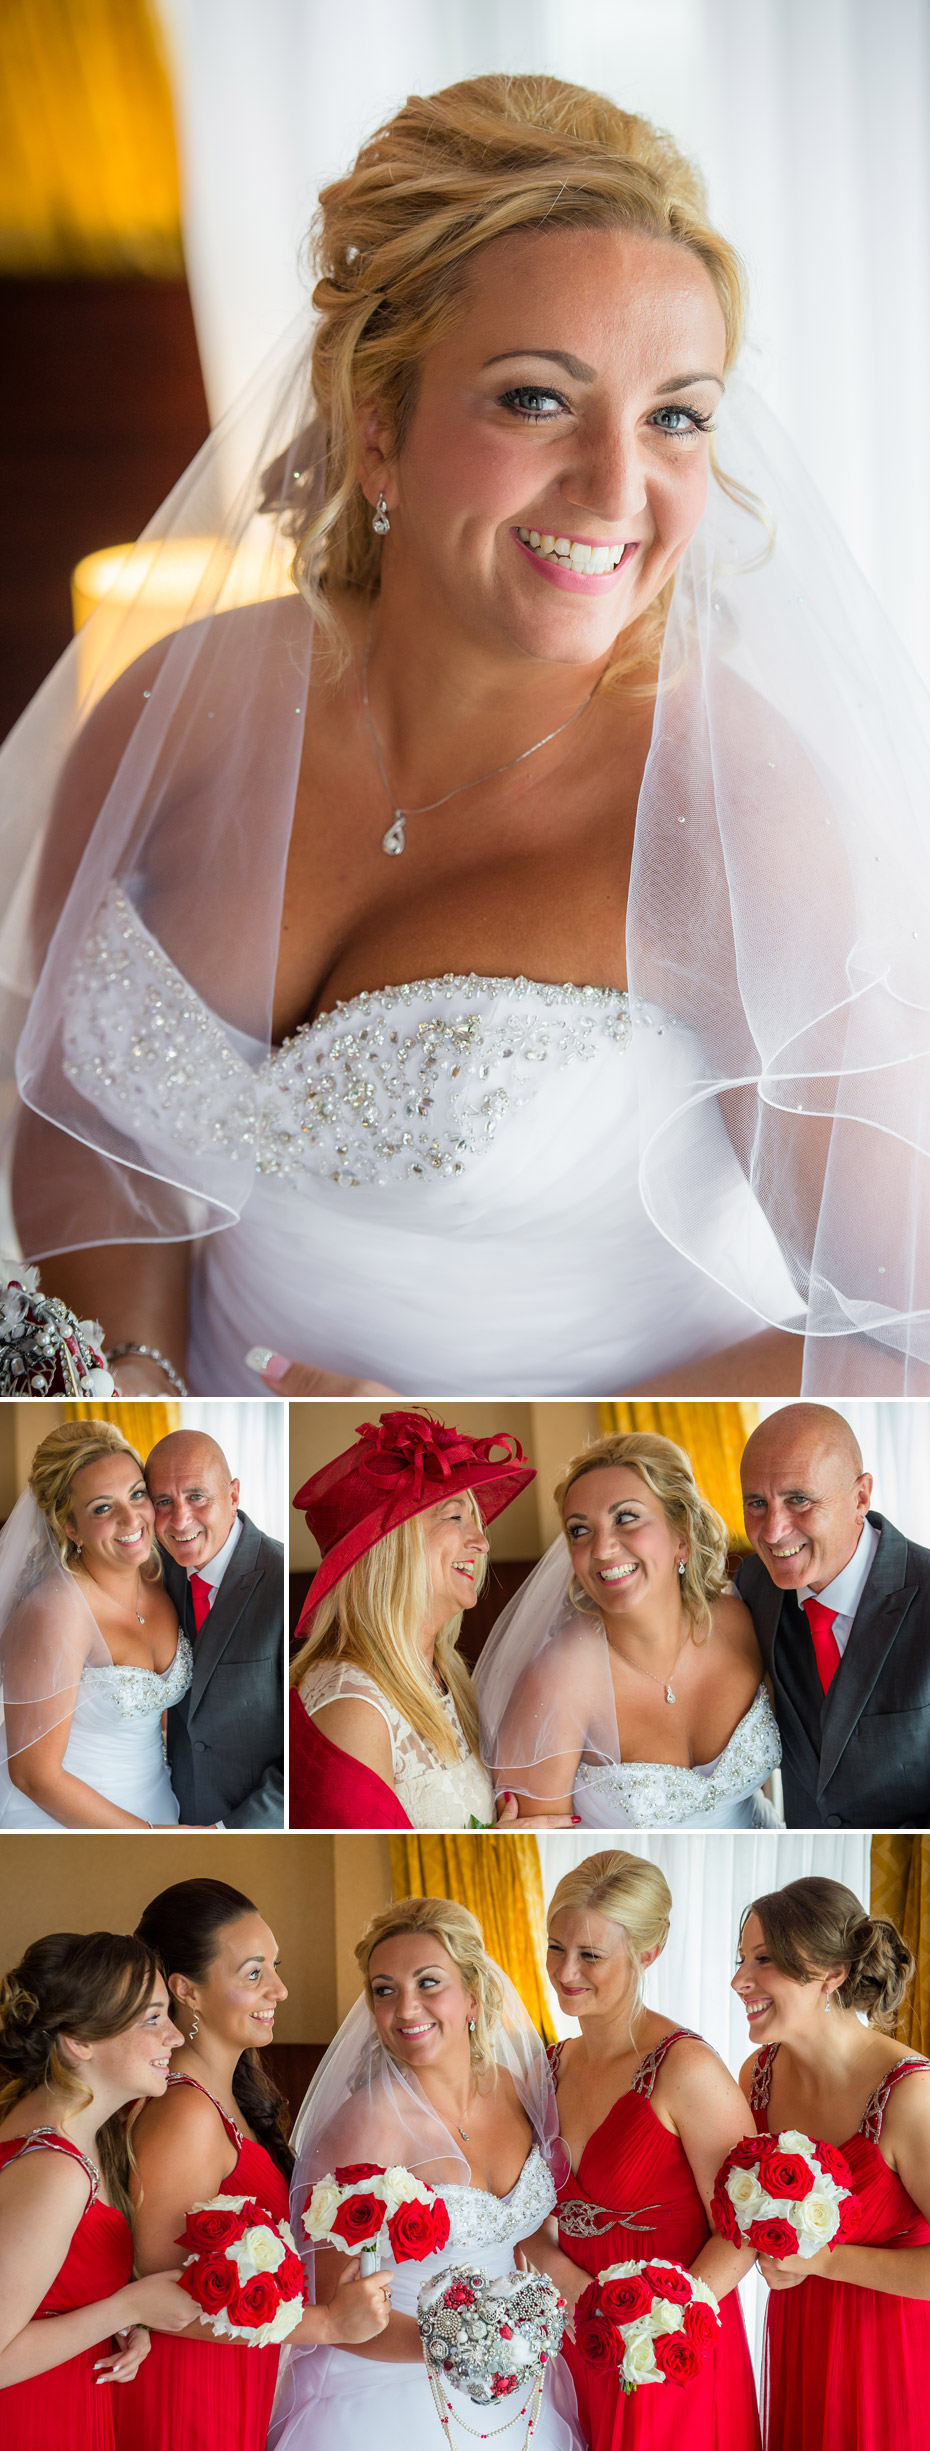 wedding-photographs-crowne-plaza-speke-liverpool-004